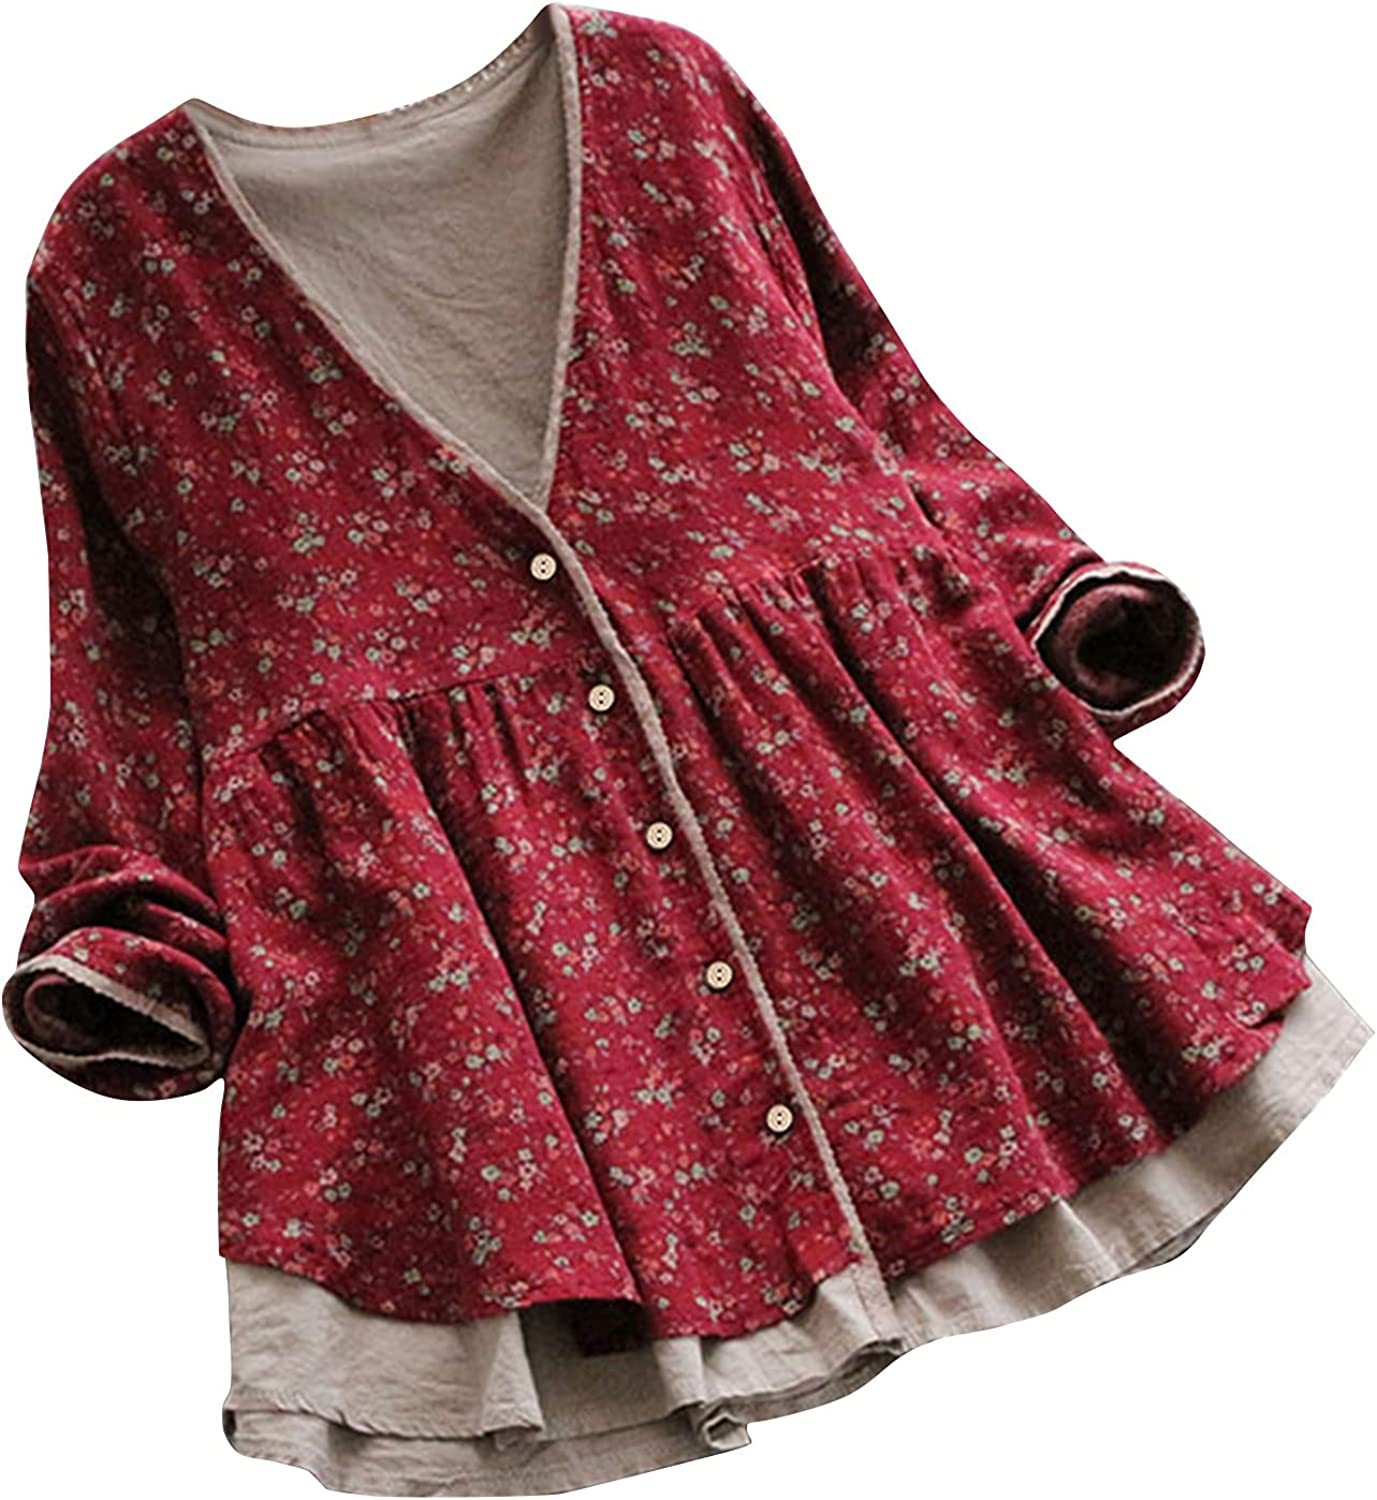 VonVonCo Fashion Tops for Women Casual Summer Cotton Linen Shirt Long Sleeve Loose Casual Top Cardigan